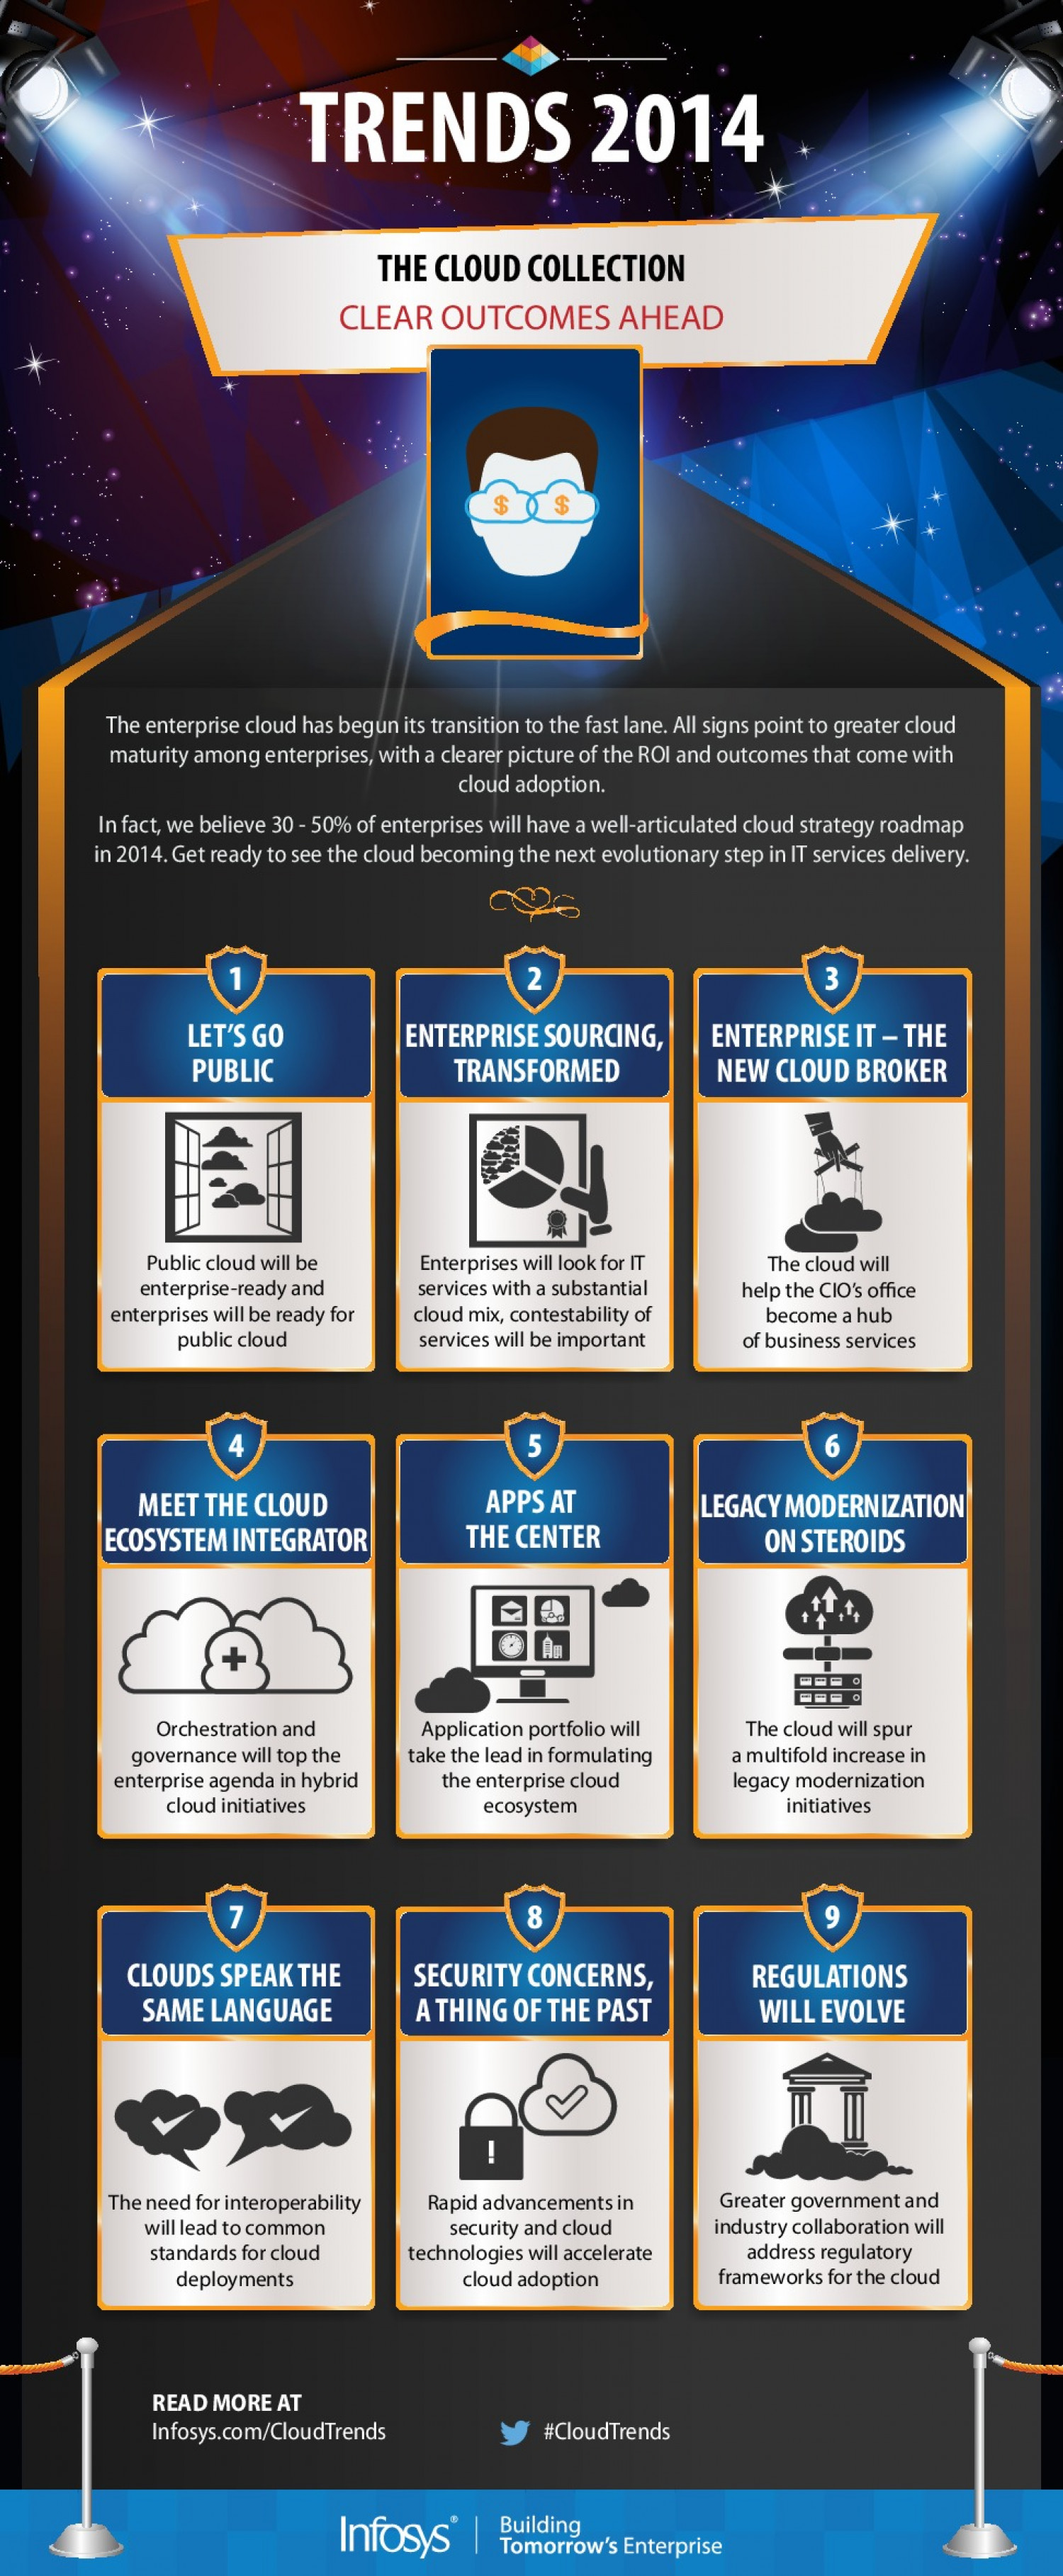 9 Cloud Trends For 2014 Infographic